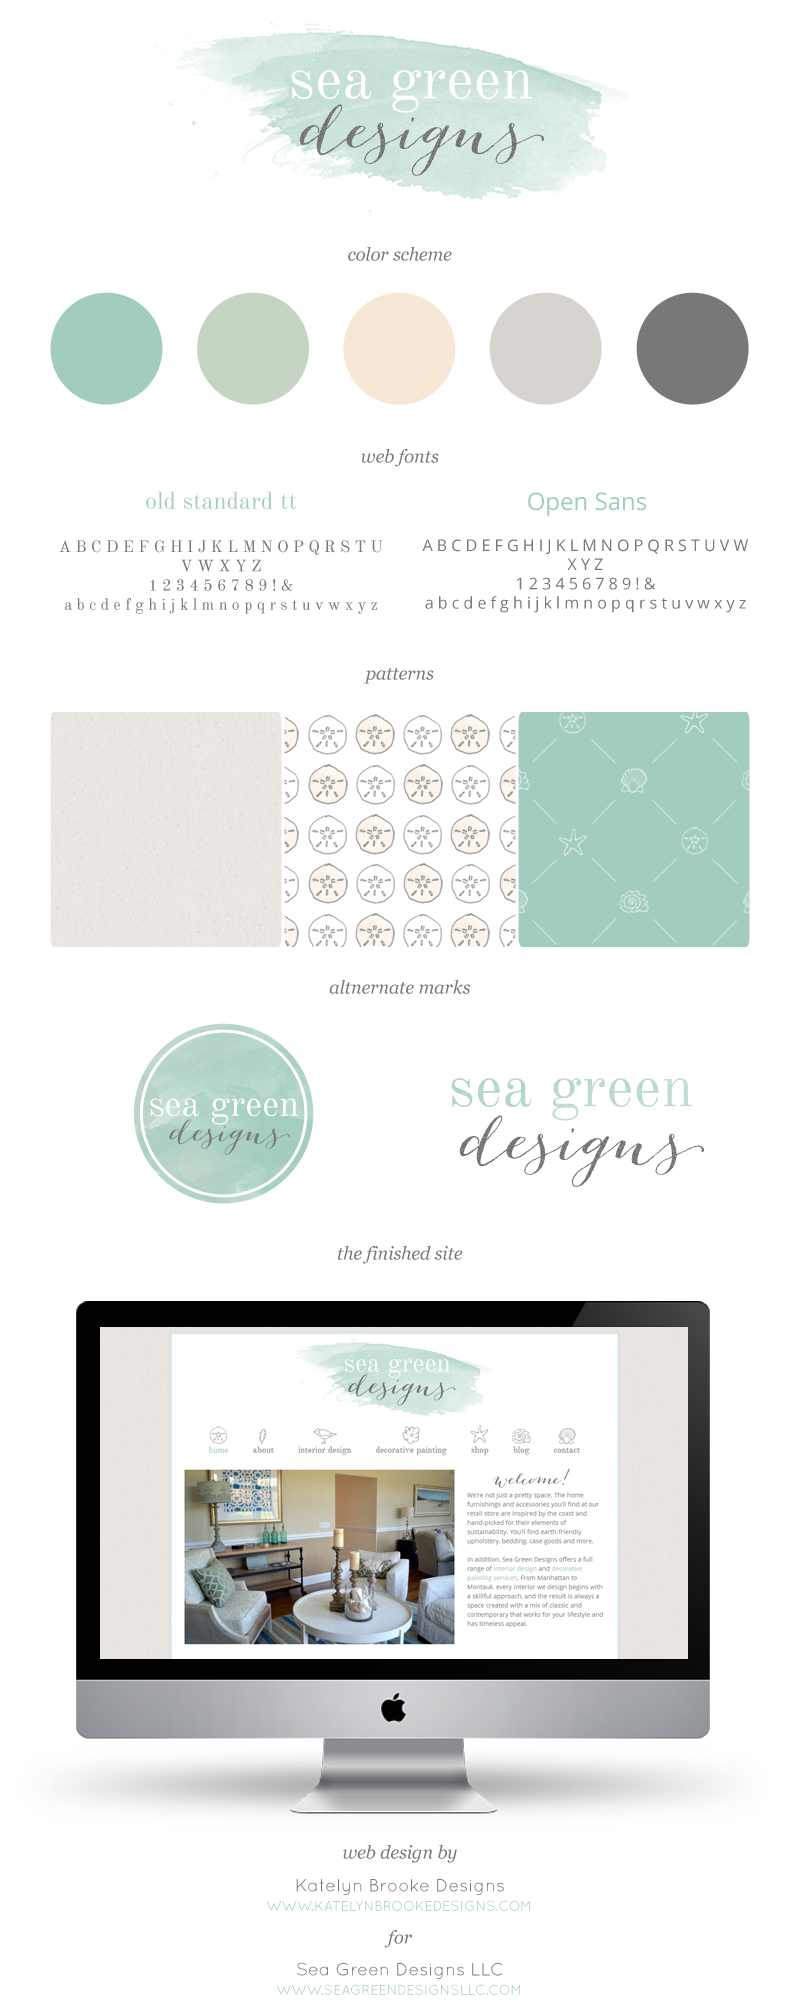 custom branding + web design for Sea Green Designs